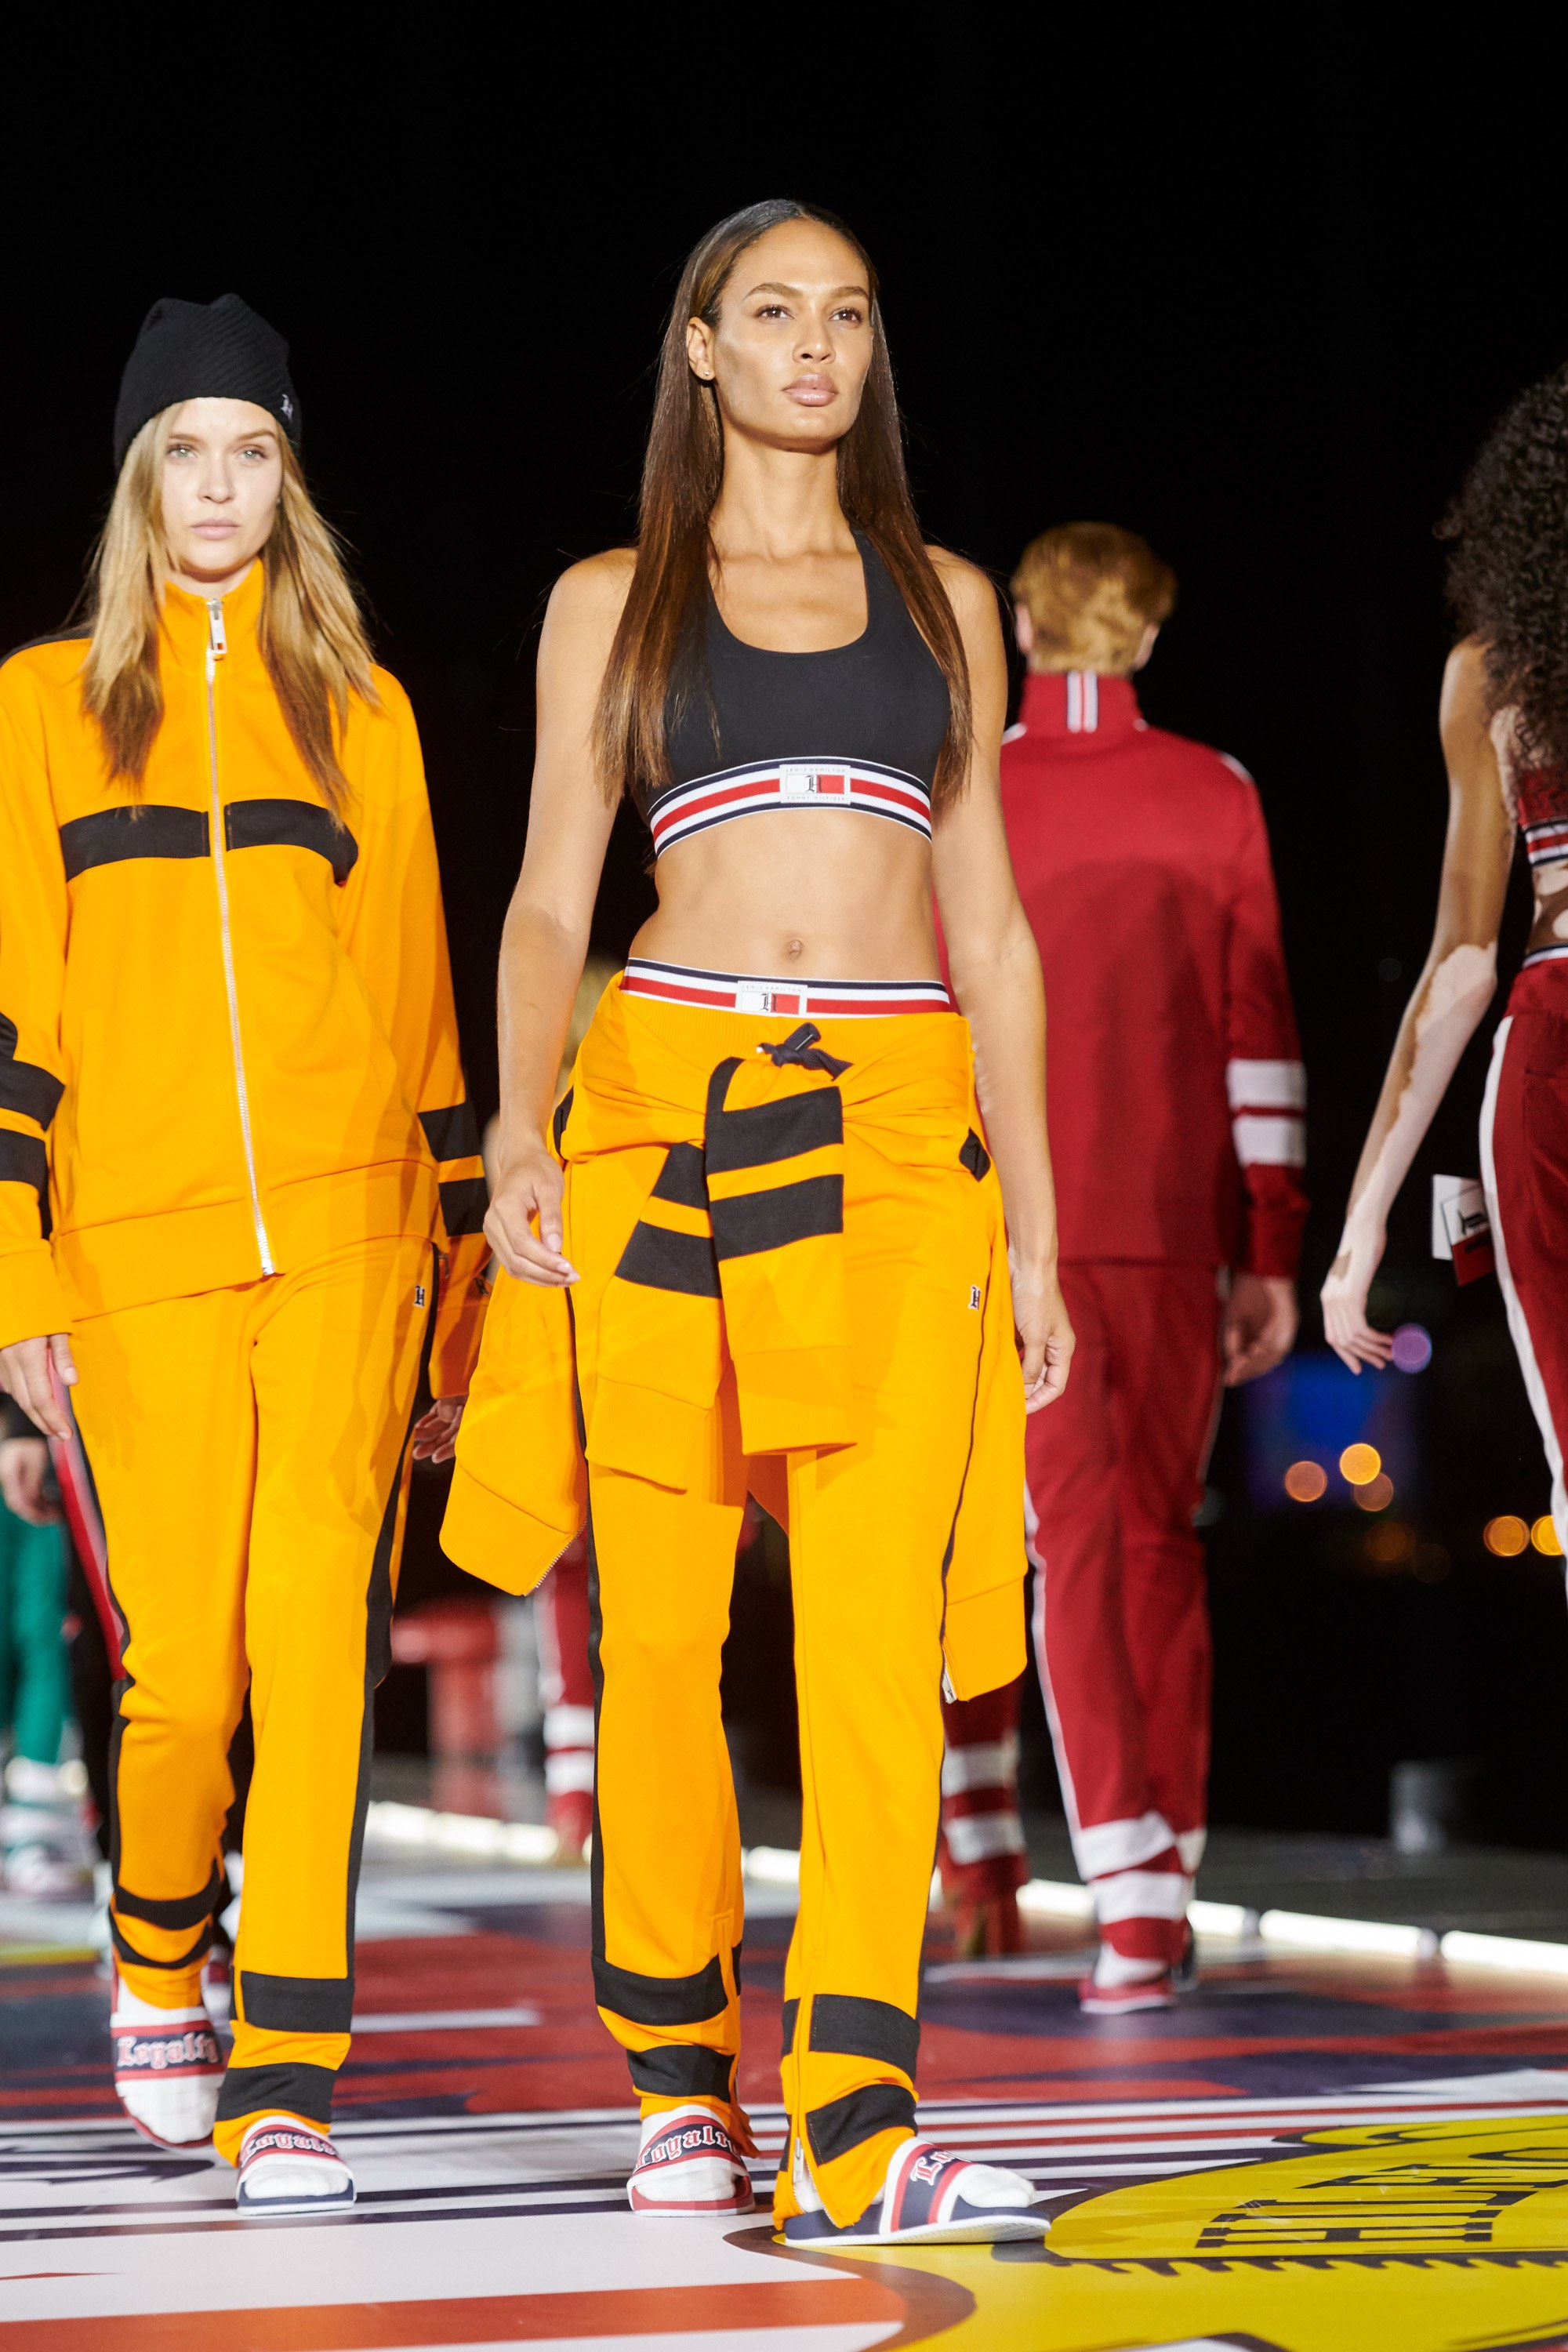 Tommy Hilfiger, Fall 2018, Ready-to-Wear, collection, Tommy Now, line, fashion, brand, Park Chanyeol, designer, collaboration, Lewis Hamilton, Gigi Hadid, runway, Hailey Baldwin, Winnie Harlow, fashion house, Tommy x Lewis, #TOMMYNOW